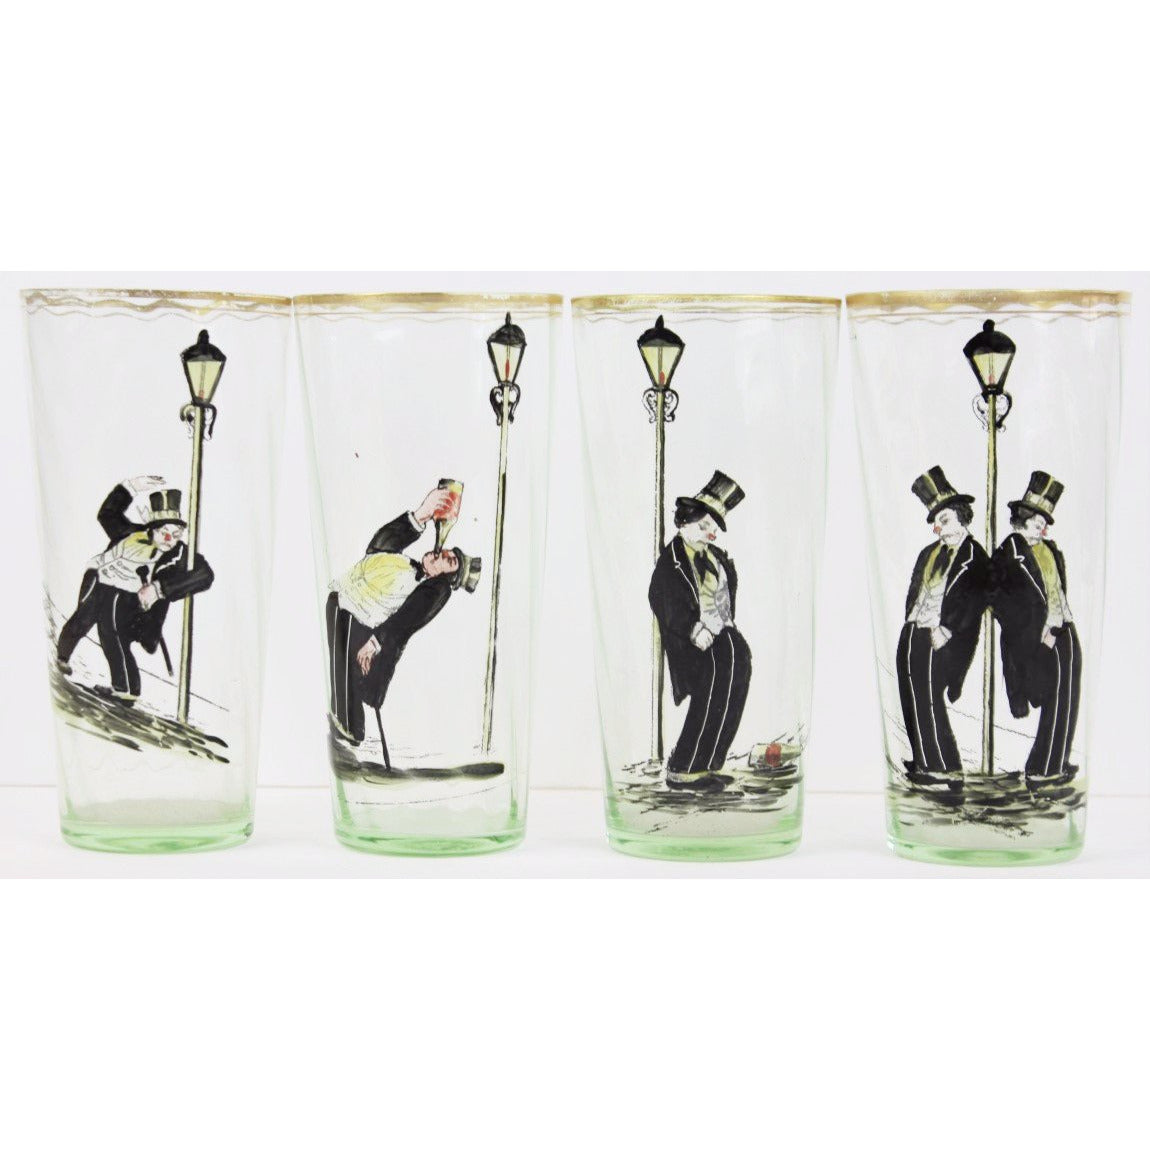 Set of 4 Hand-Painted Highball Topper Glasses